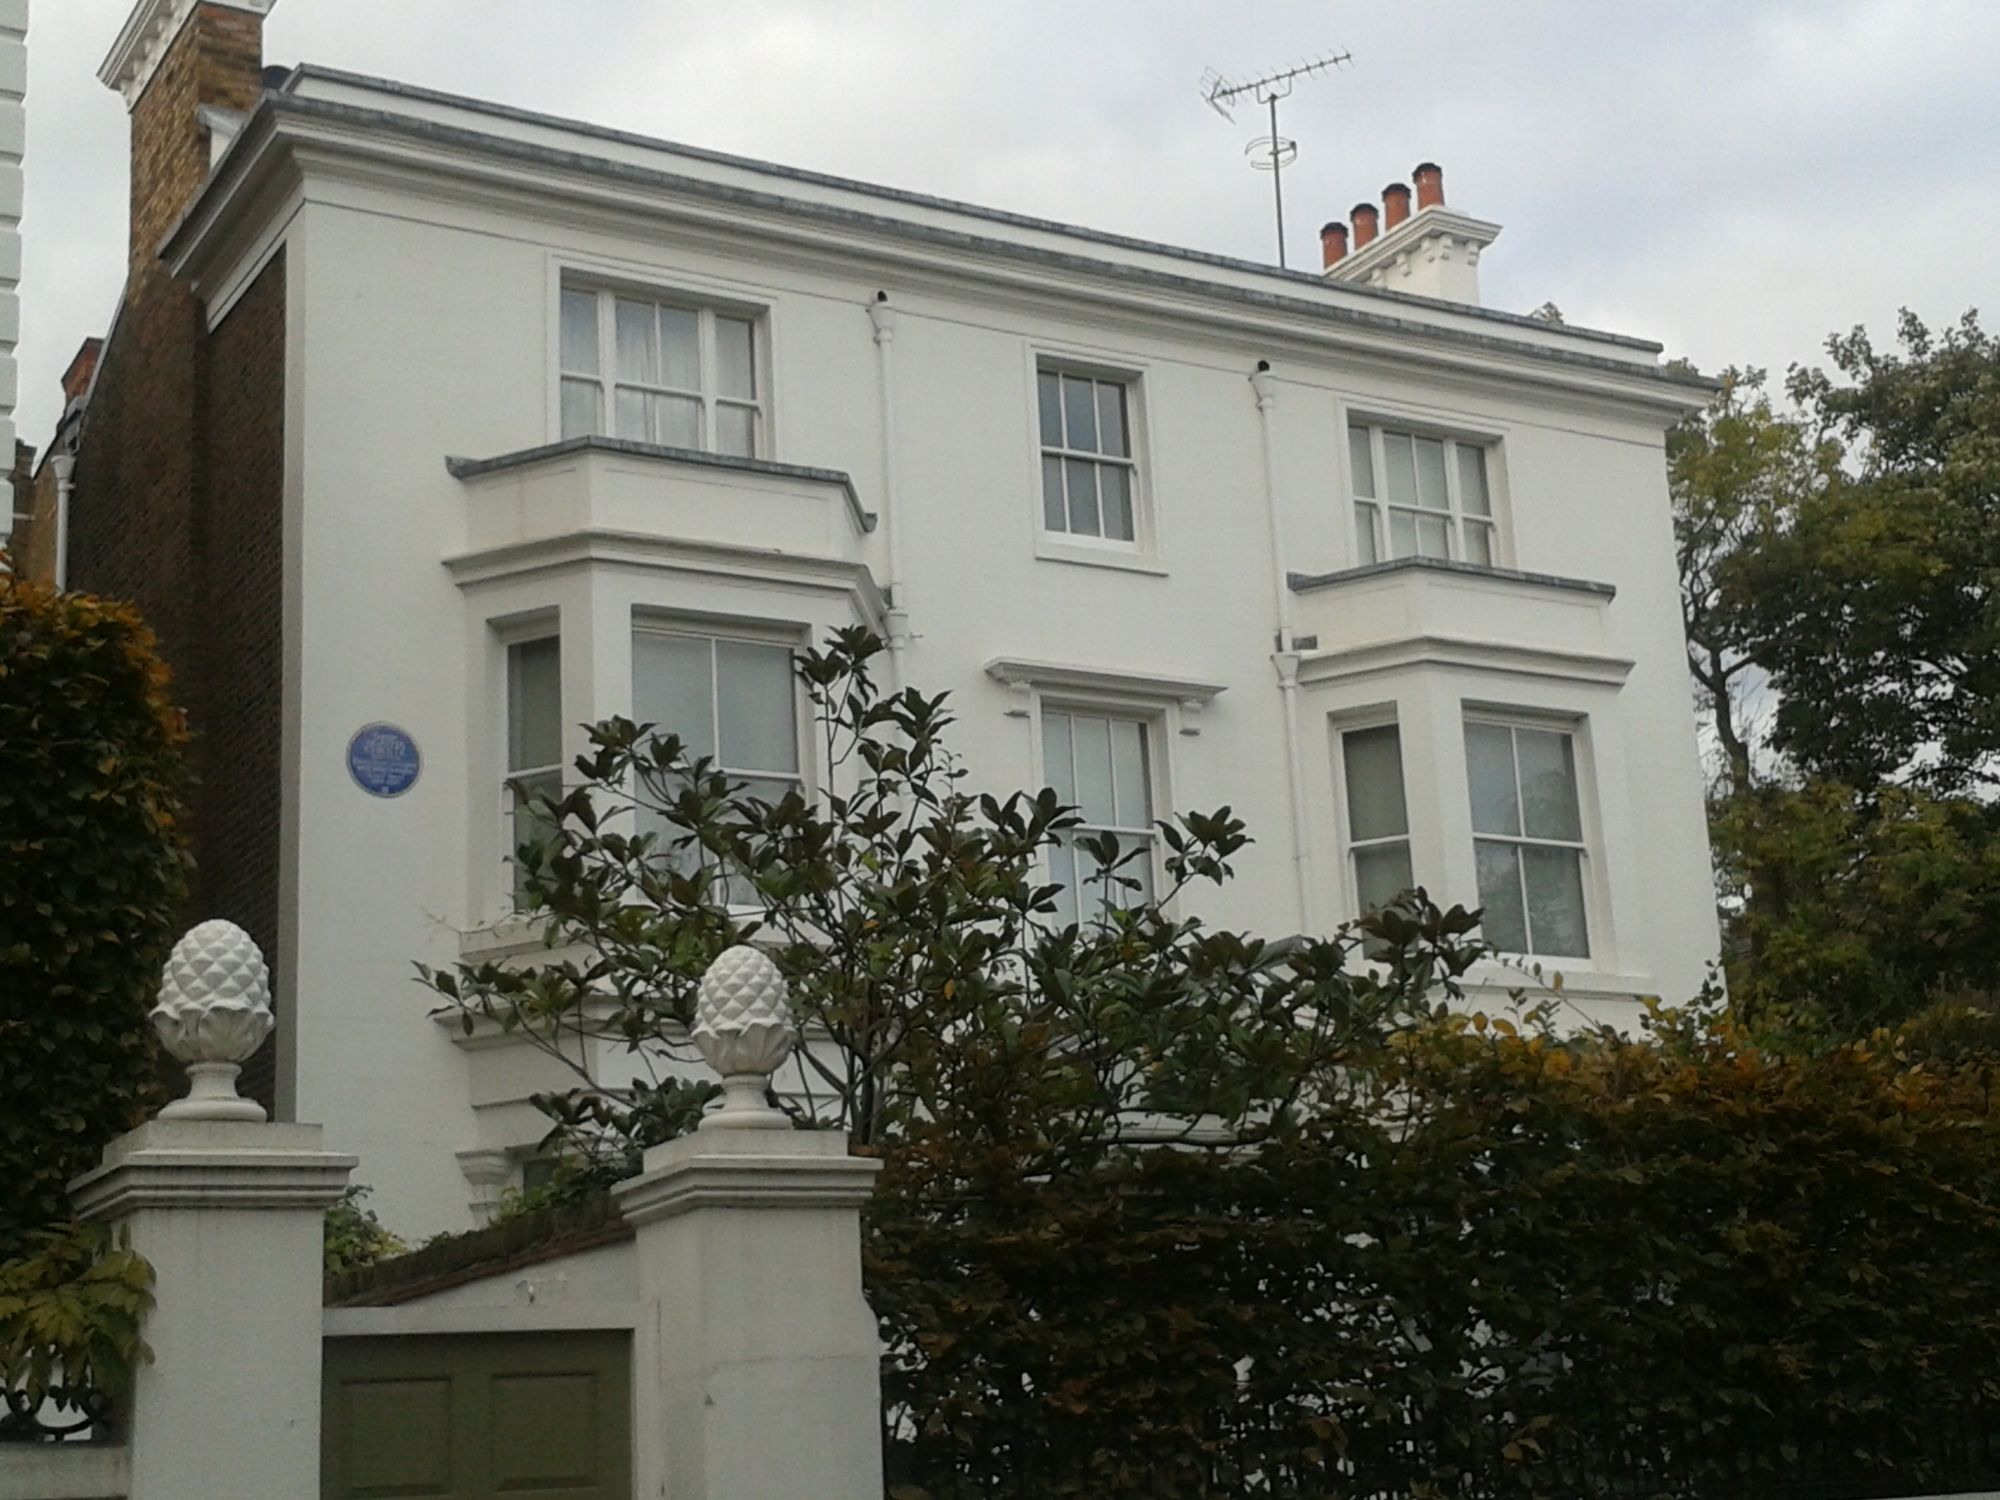 One of Agatha Christie's former London homes